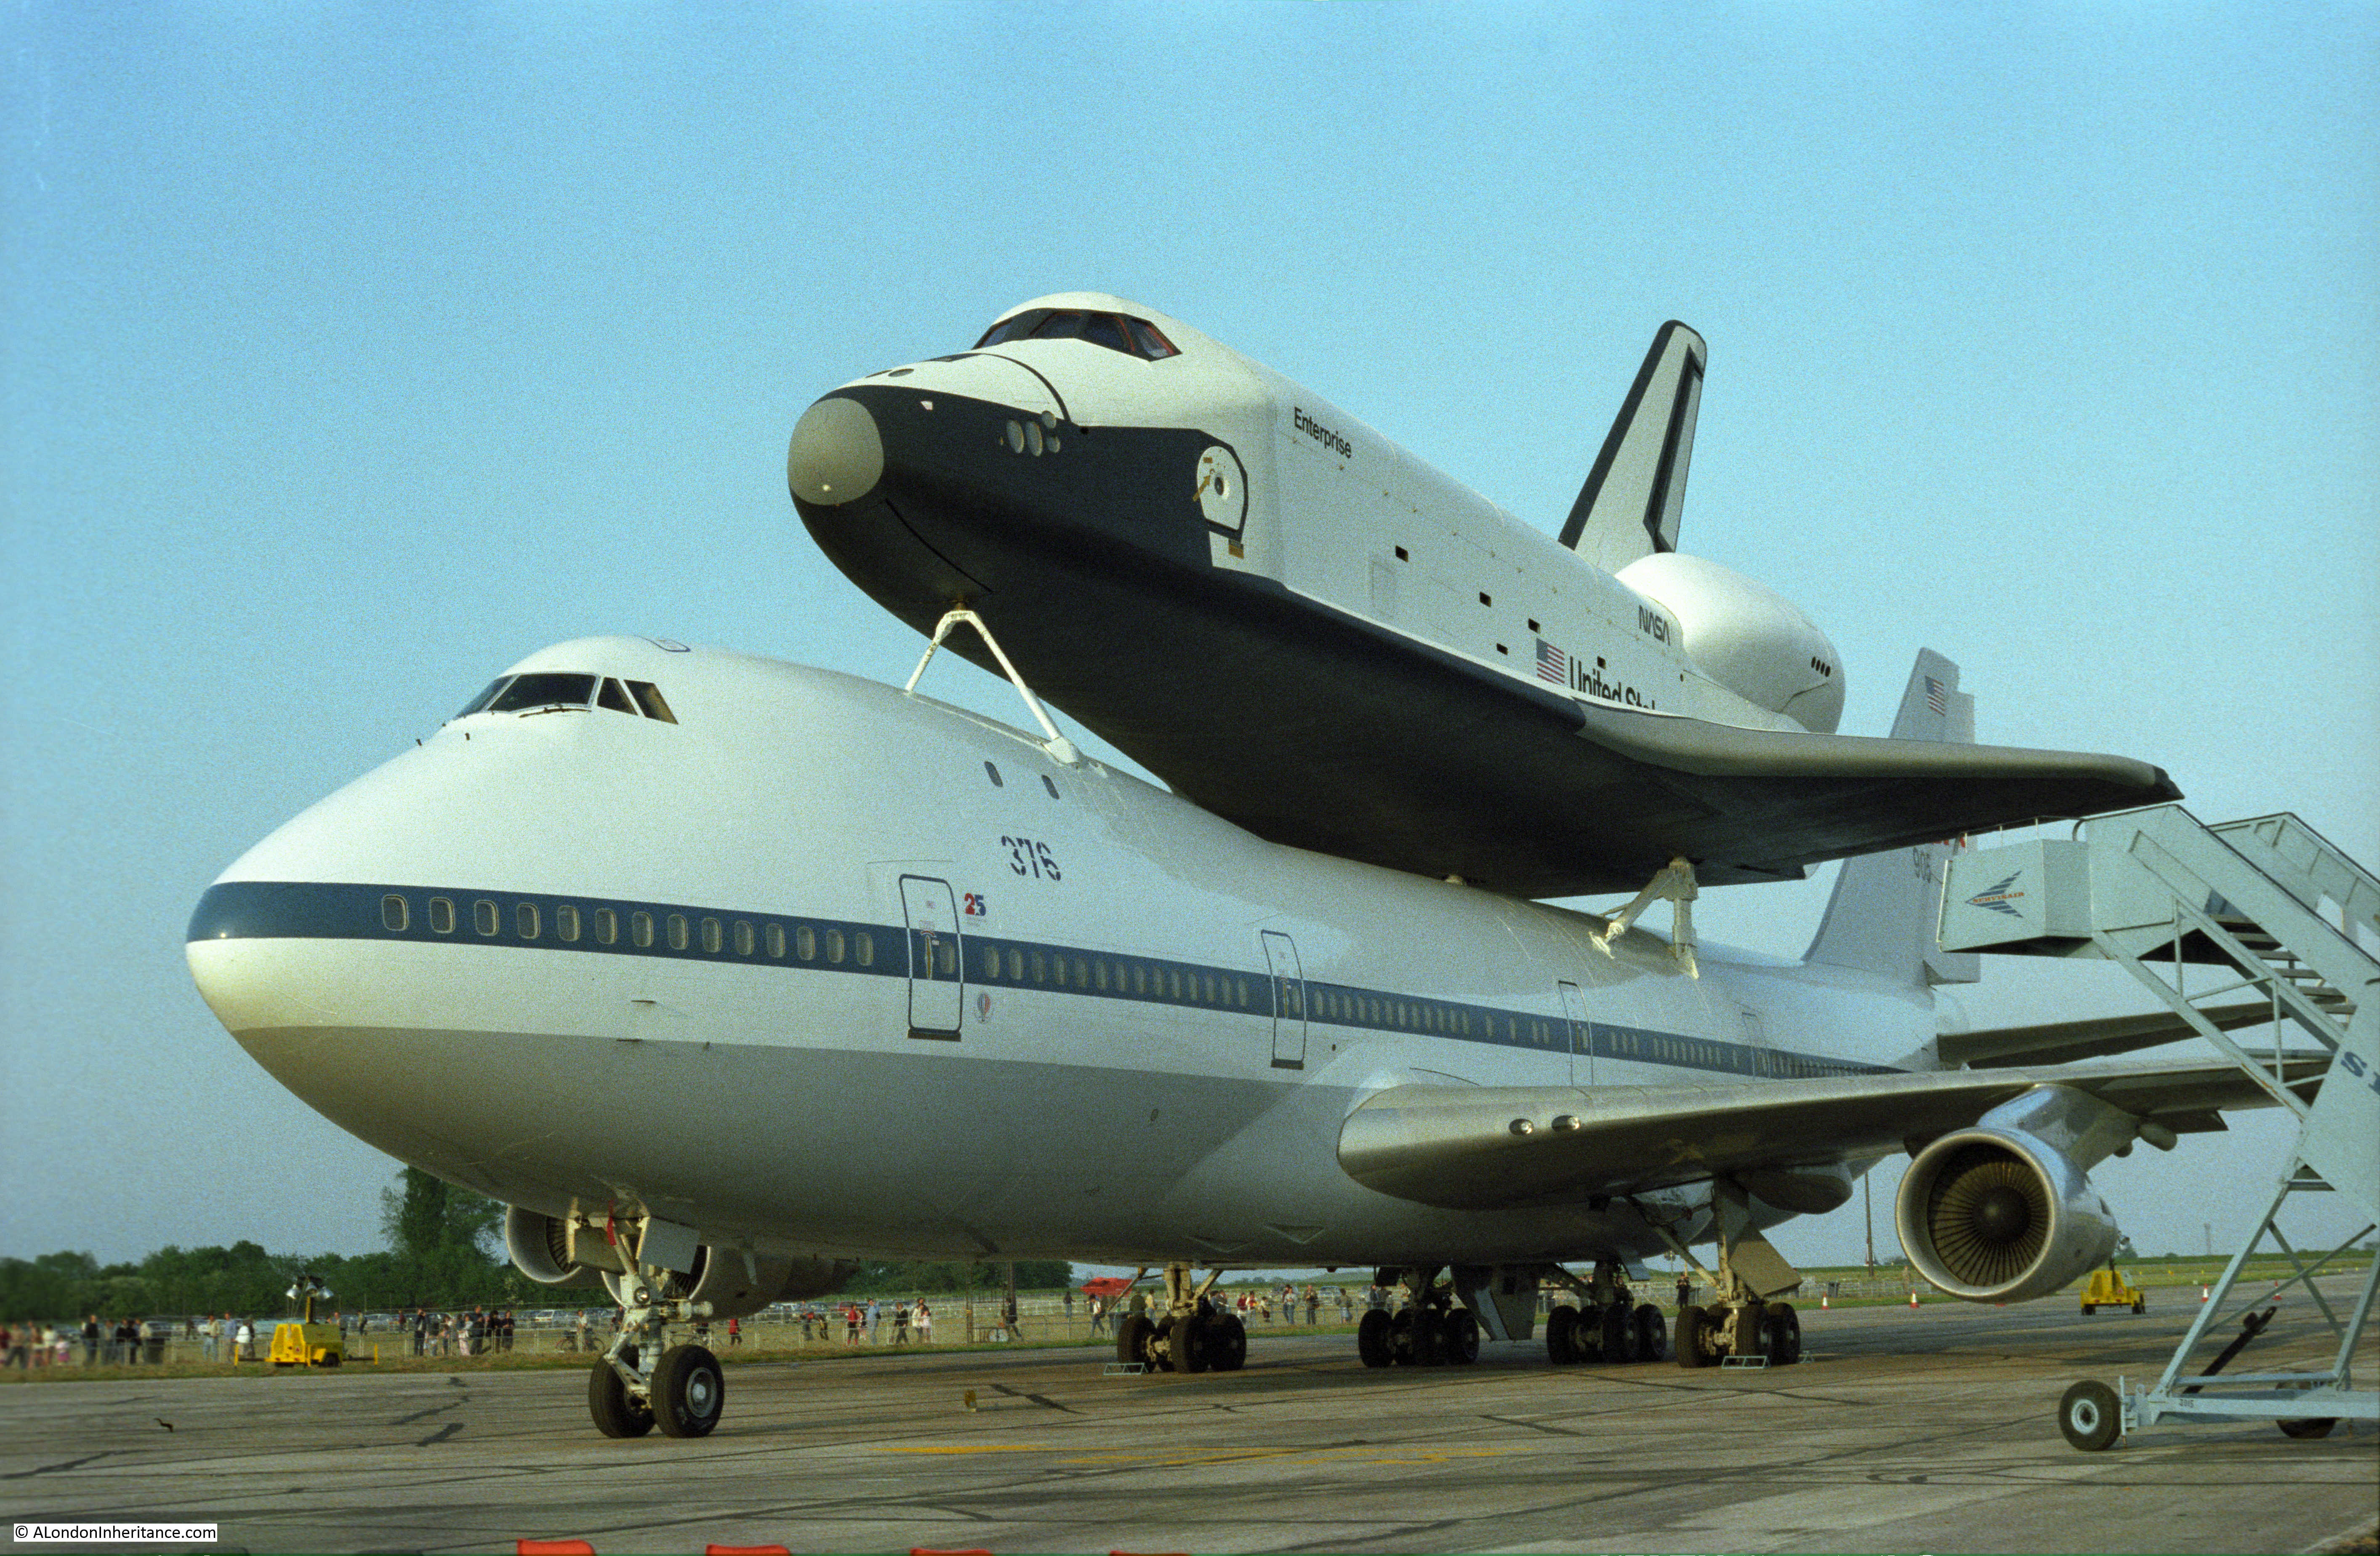 Space Shuttle Archives - A London Inheritance